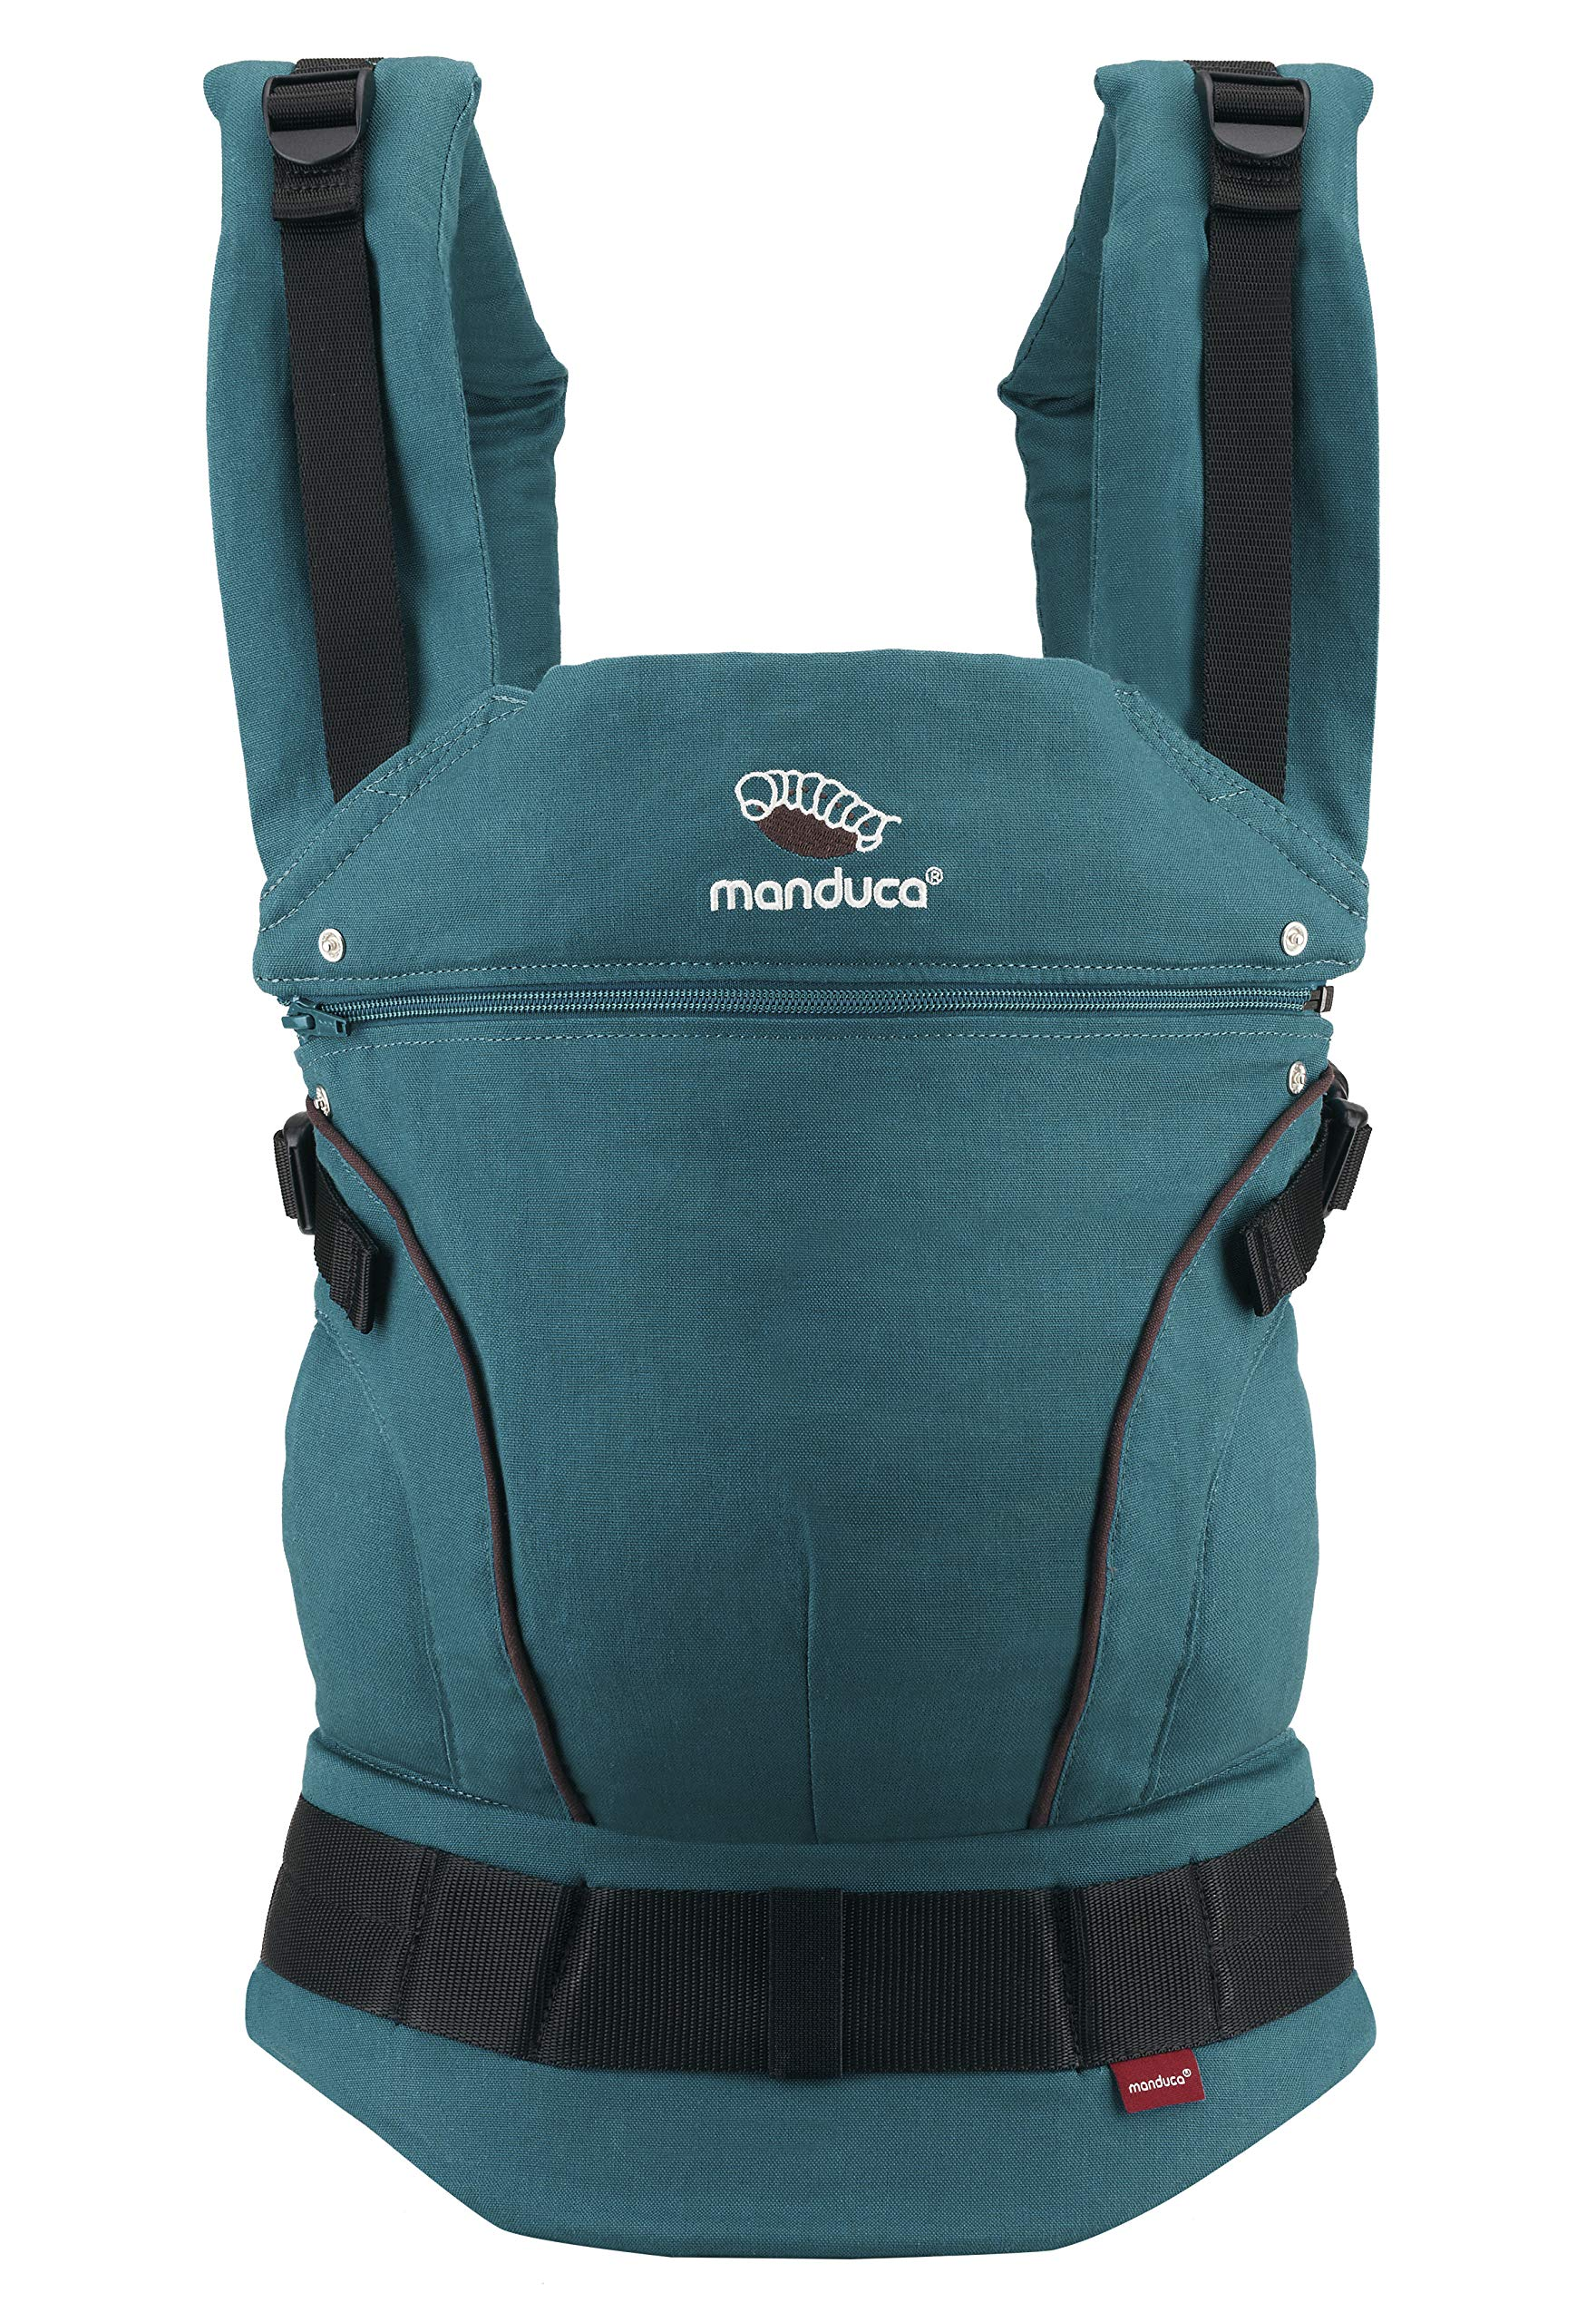 manduca First Baby Carrier > HempCotton Petrol Blue - Brown < Ergonomic Baby & Child Carrier, Soft & Sturdy Canvas (Organic Cotton & Hemp), Front, Hip & Back Carry, for Newborn to Toddlers up to 20kg Manduca manduca baby carrier First HempCotton: the original made of hemp & organic cotton with patented back extension, is already a classic. New features: Improved three-point-buckle (secure & easy to open) Integrated in every carrier: infant pouch (newborn insert), stowable headrest & sun protection for your baby, back extension (grows with your child); Optional accessories for newborns: Size-It (seat reducer) and Zip-In Ellipse Ergonomic design for men & women: Soft padded shoulder straps (multiple adjustable) & the anatomically shaped stable hipbelt (fits hips from 64cm to 140cm) ensure balanced weight distribution. No waist-belt extension needed 1